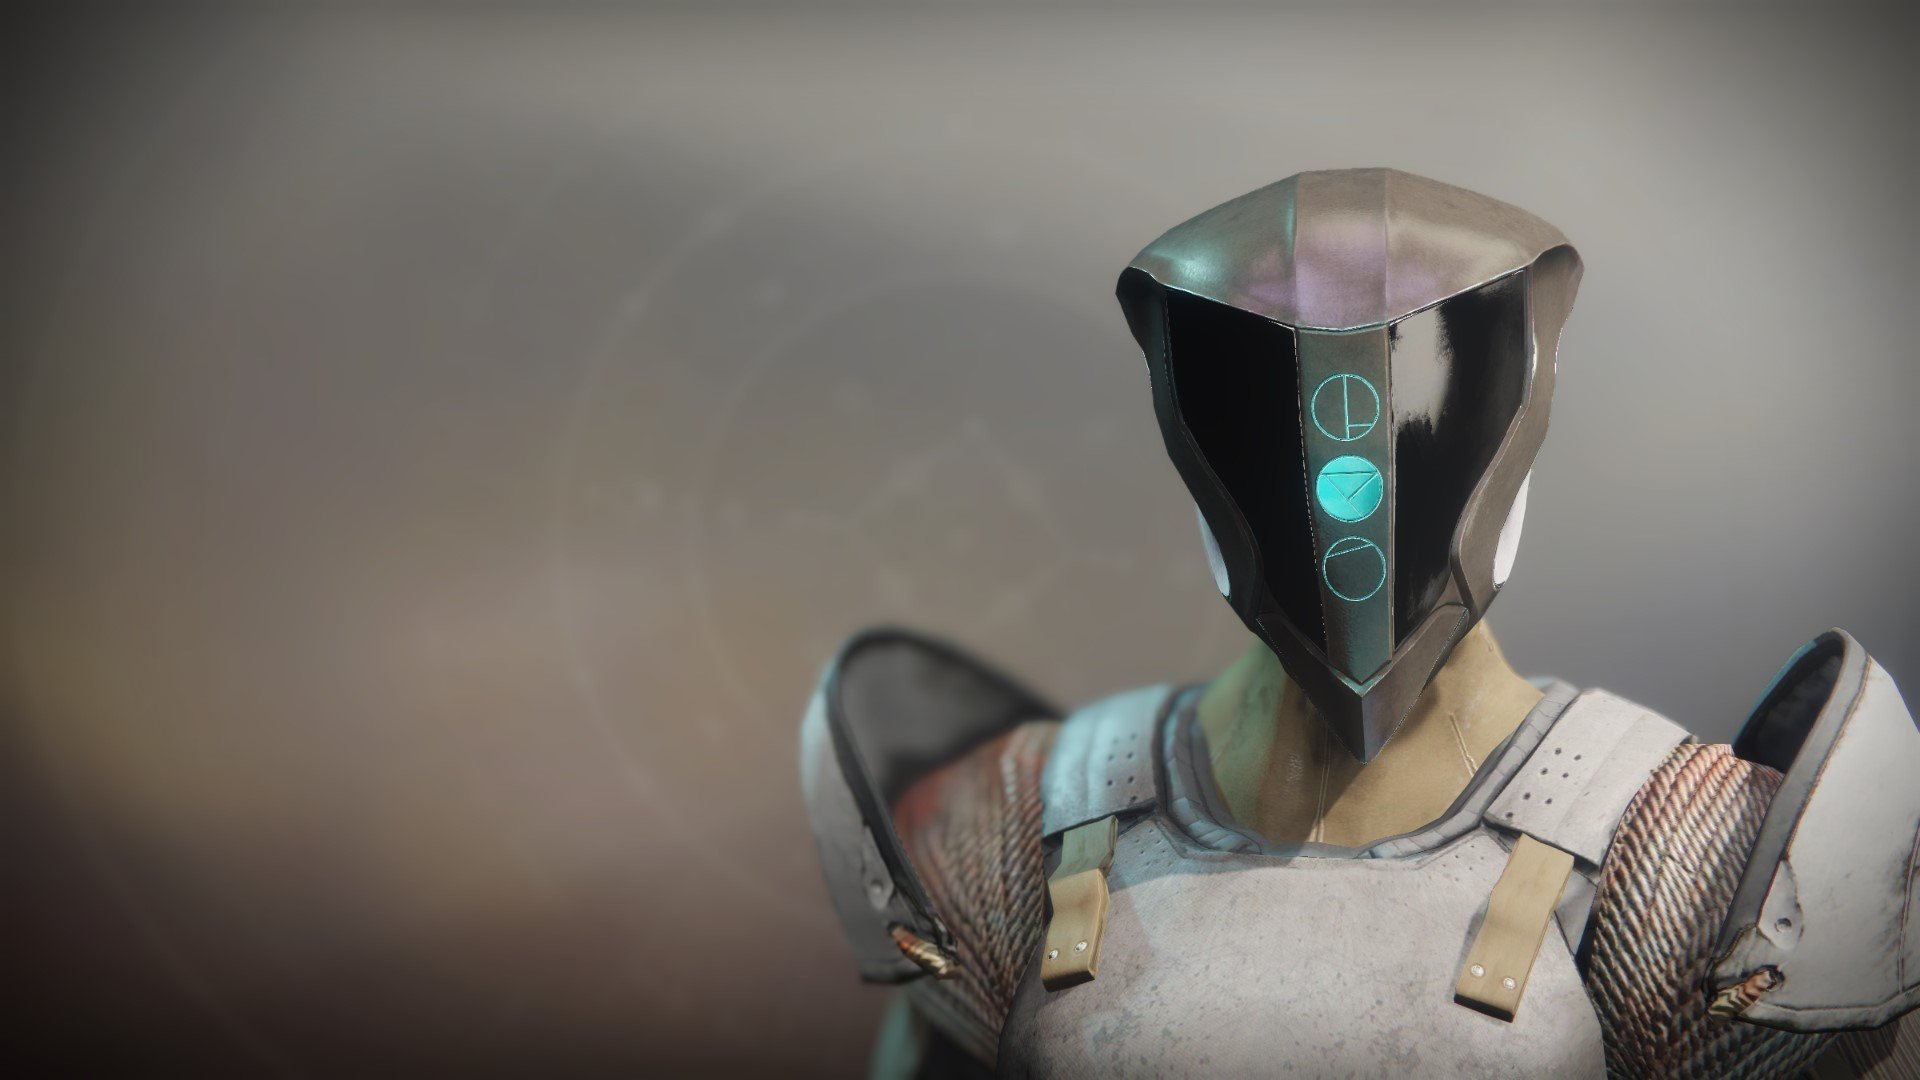 An in-game render of the Crushing Helm (CODA).